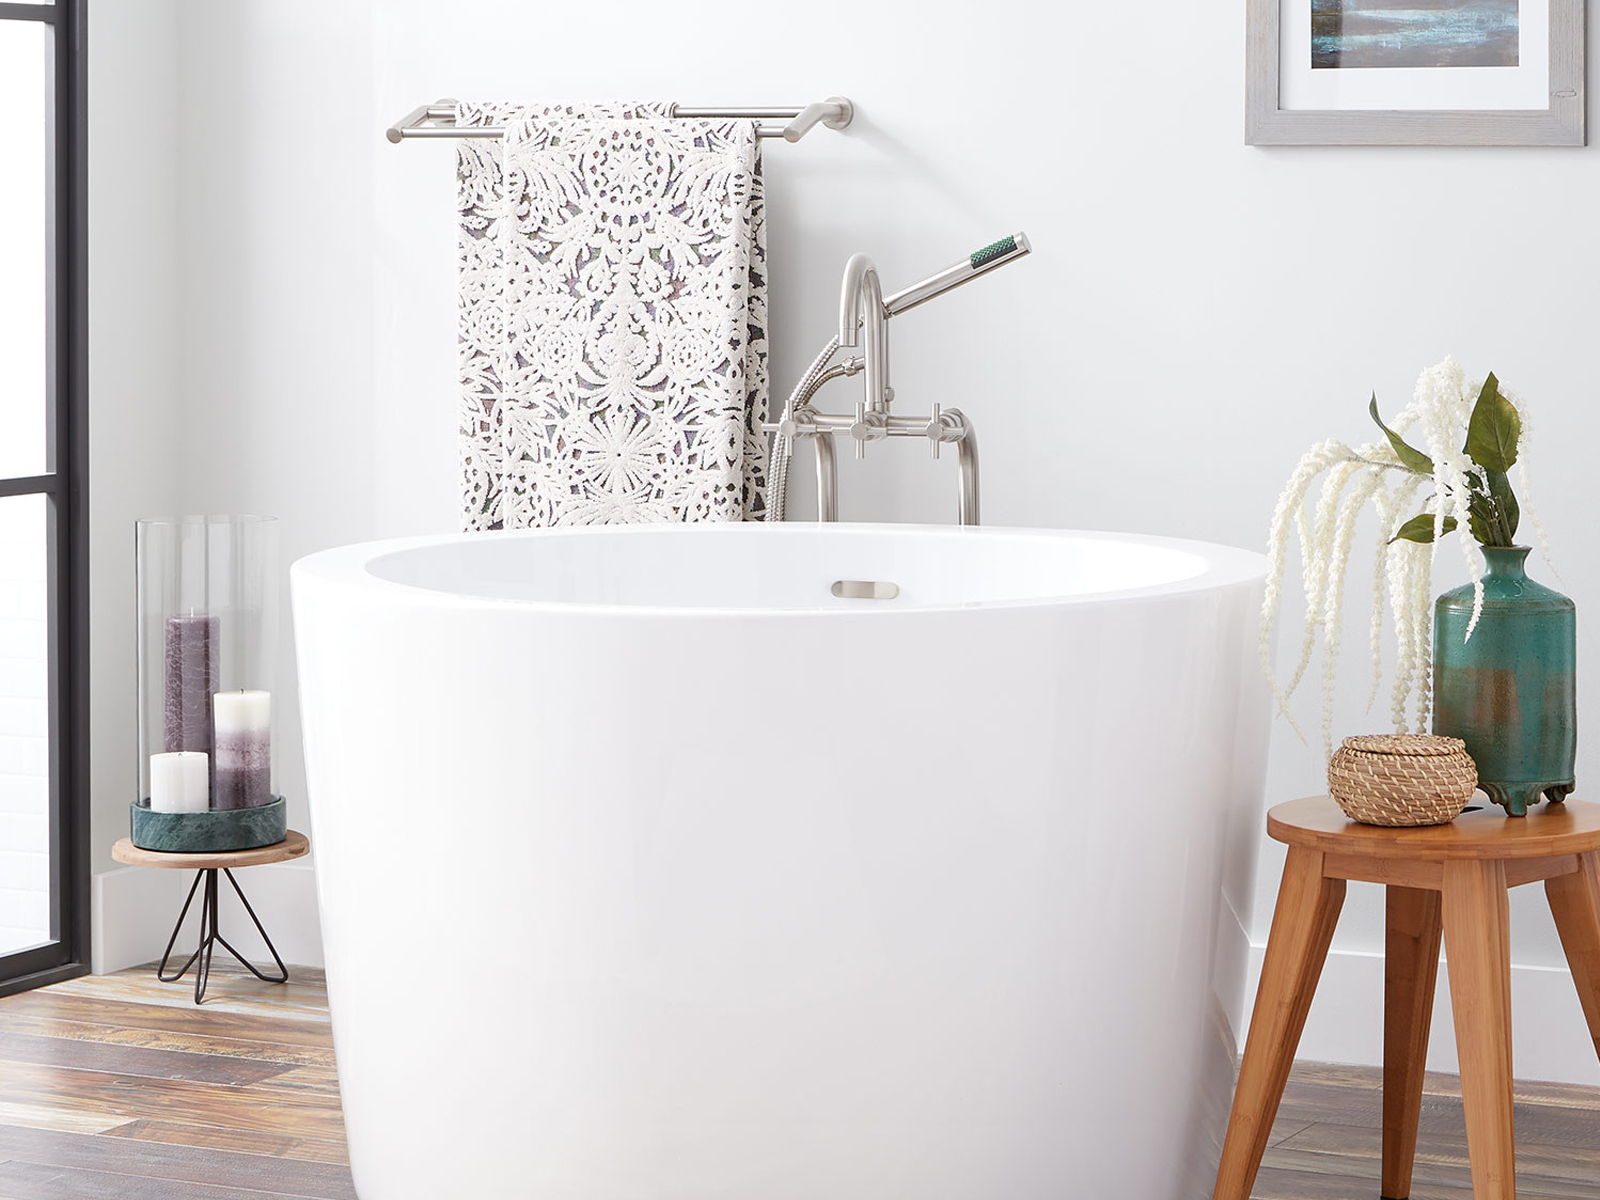 Cherie-Barber_Renovating-For-Profit_Small-Bathrooms-compact-bathtub